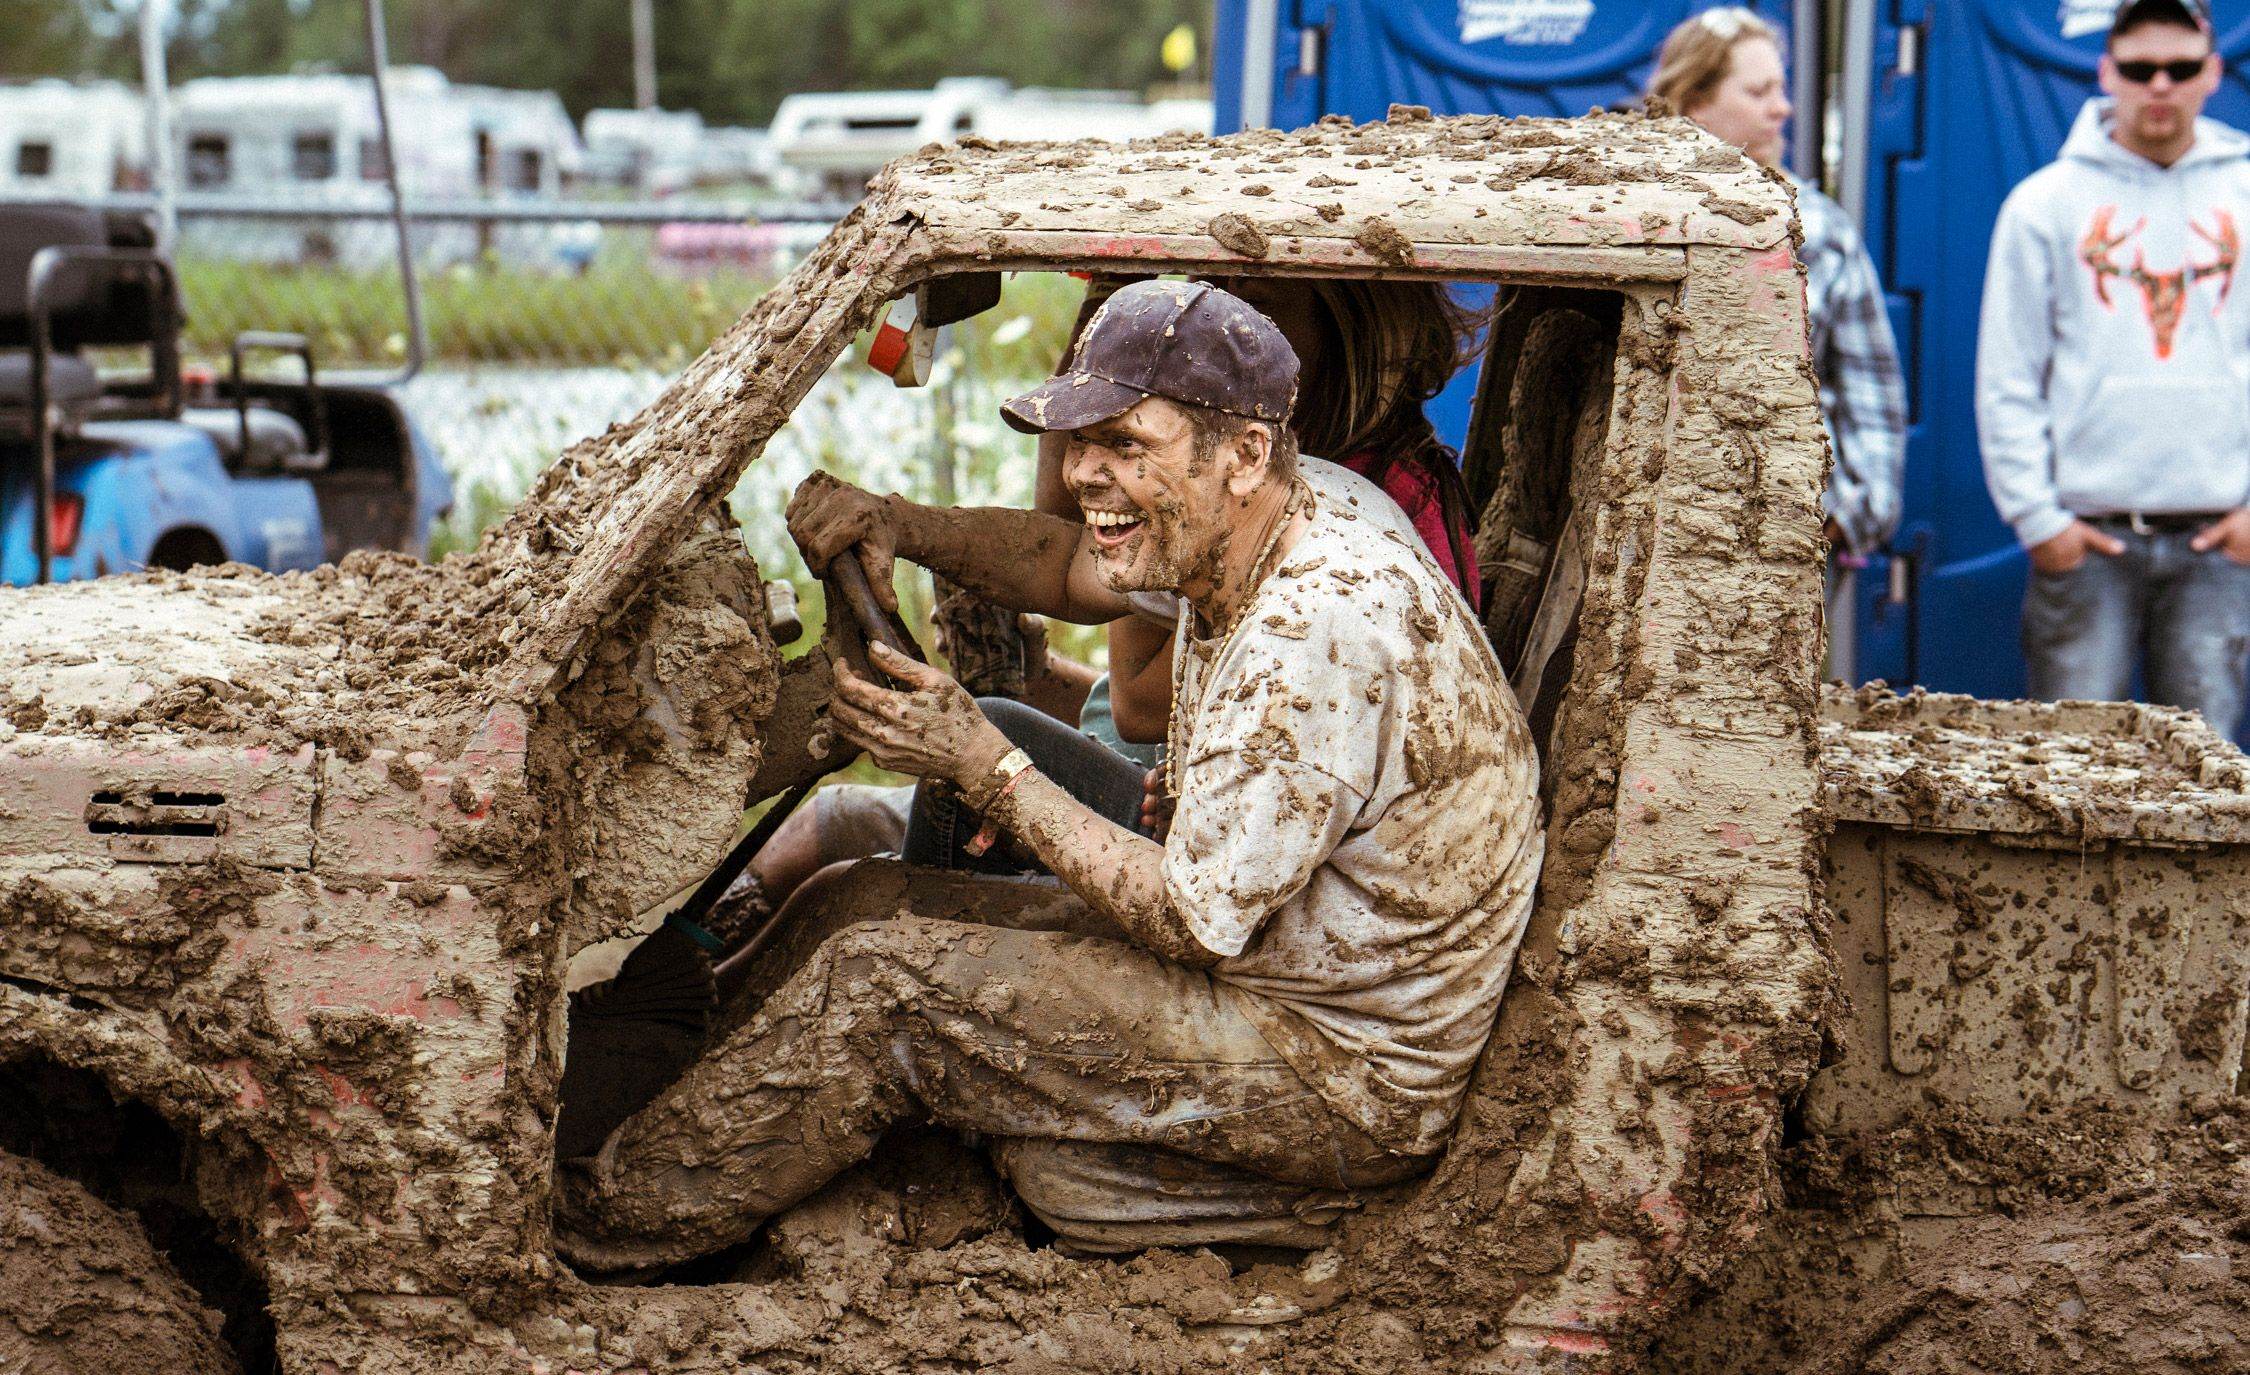 Add Water to Dirt and You Get Mud. Add Beer, Weed, and 15,000 People to Mud and You Get Michigan Mud Jam